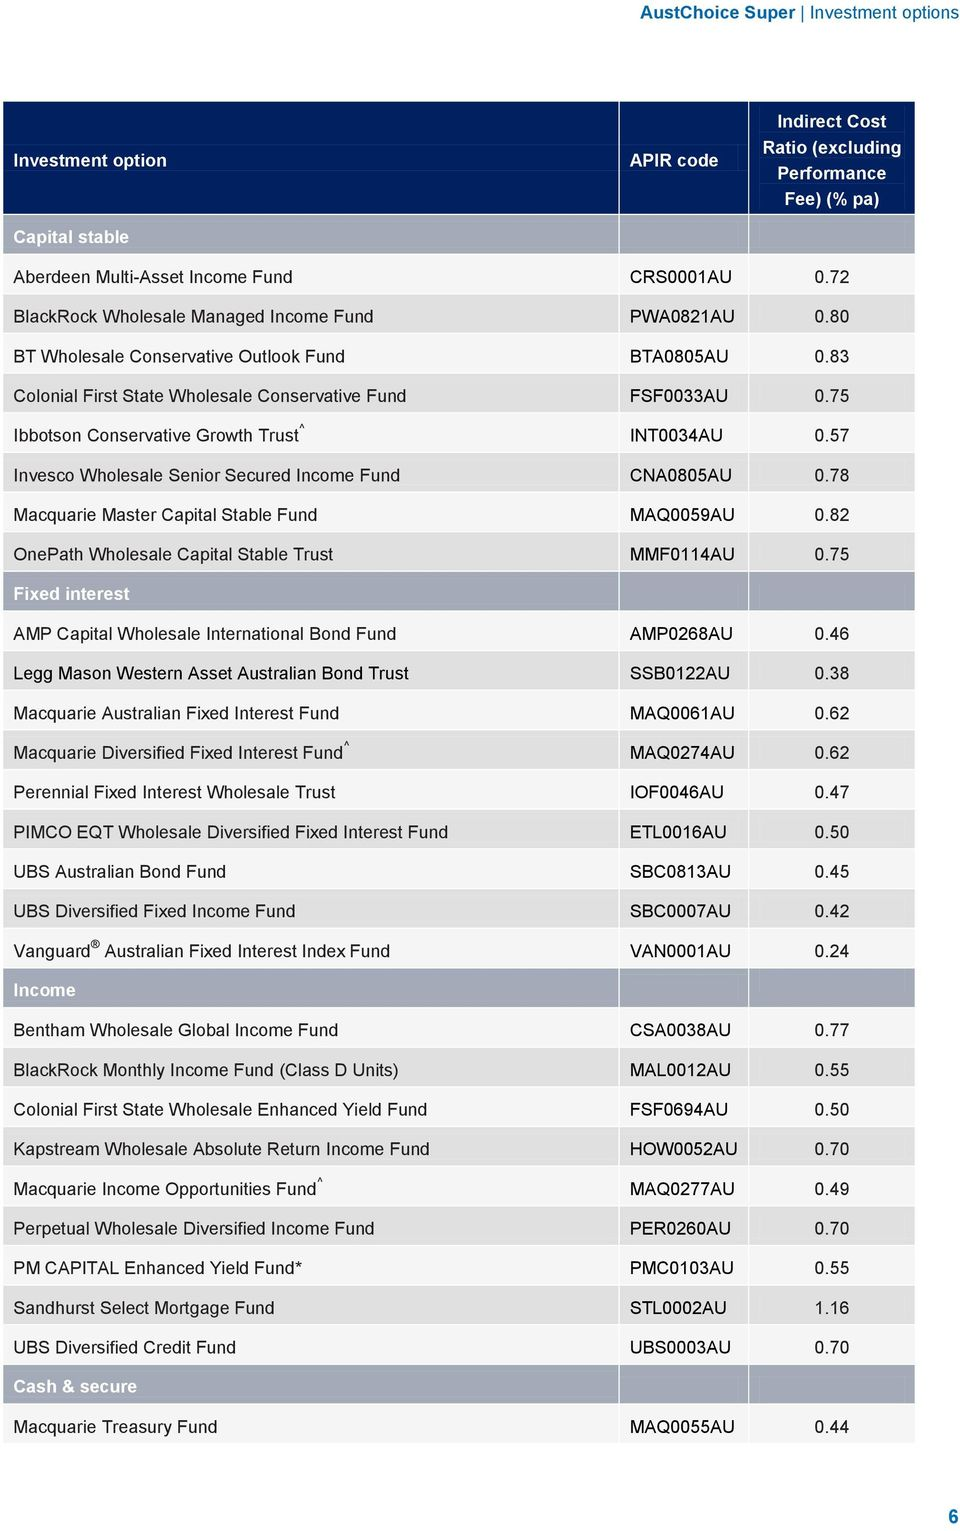 78 Macquarie Master Capital Stable Fund MAQ0059AU 0.82 OnePath Wholesale Capital Stable Trust MMF0114AU 0.75 Fixed interest AMP Capital Wholesale International Bond Fund AMP0268AU 0.